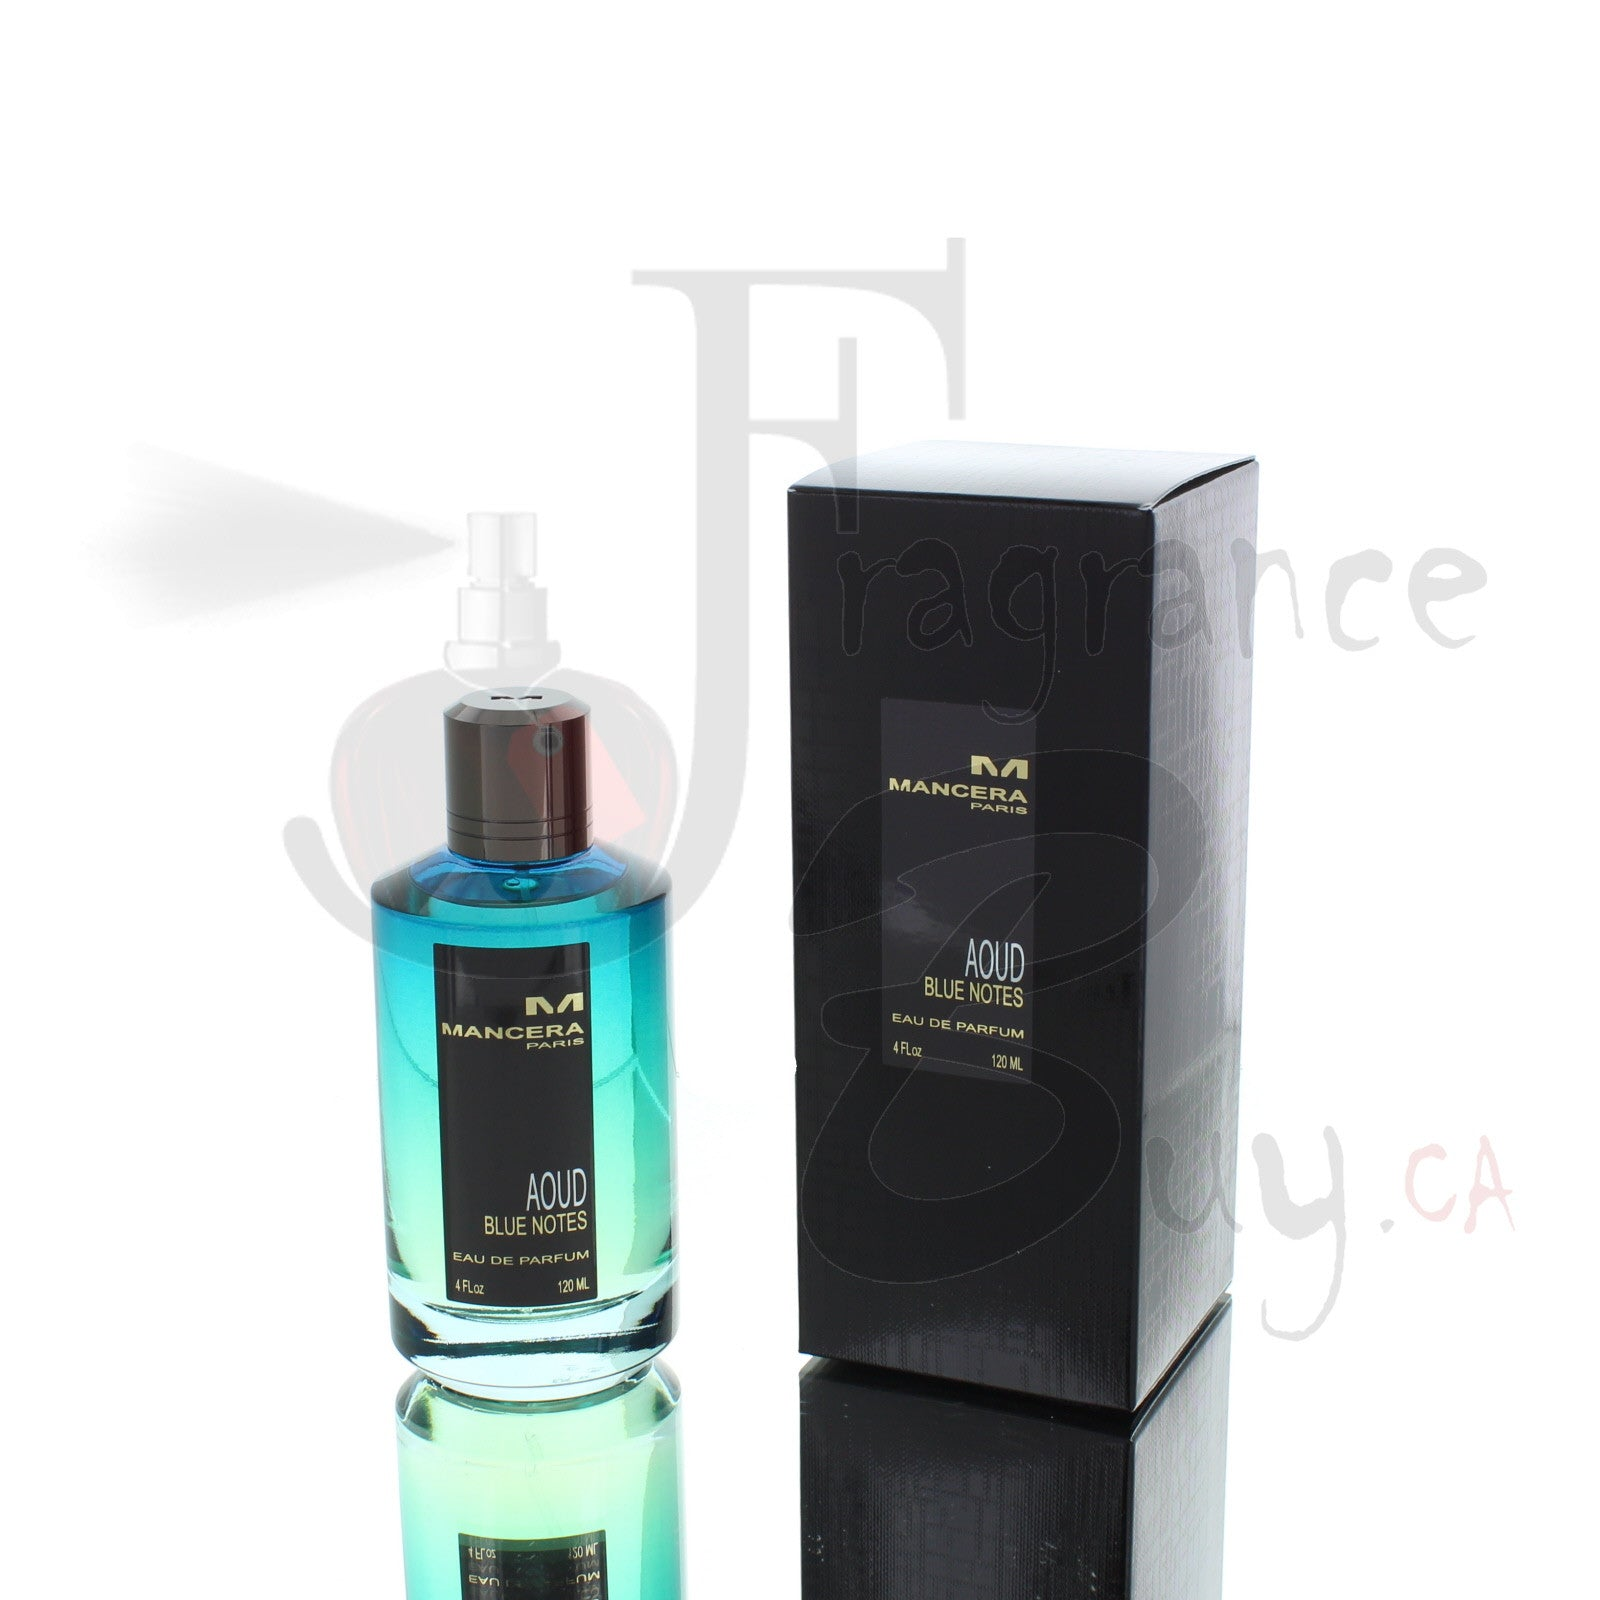 Mancera Aoud Blue Notes For Man/Woman